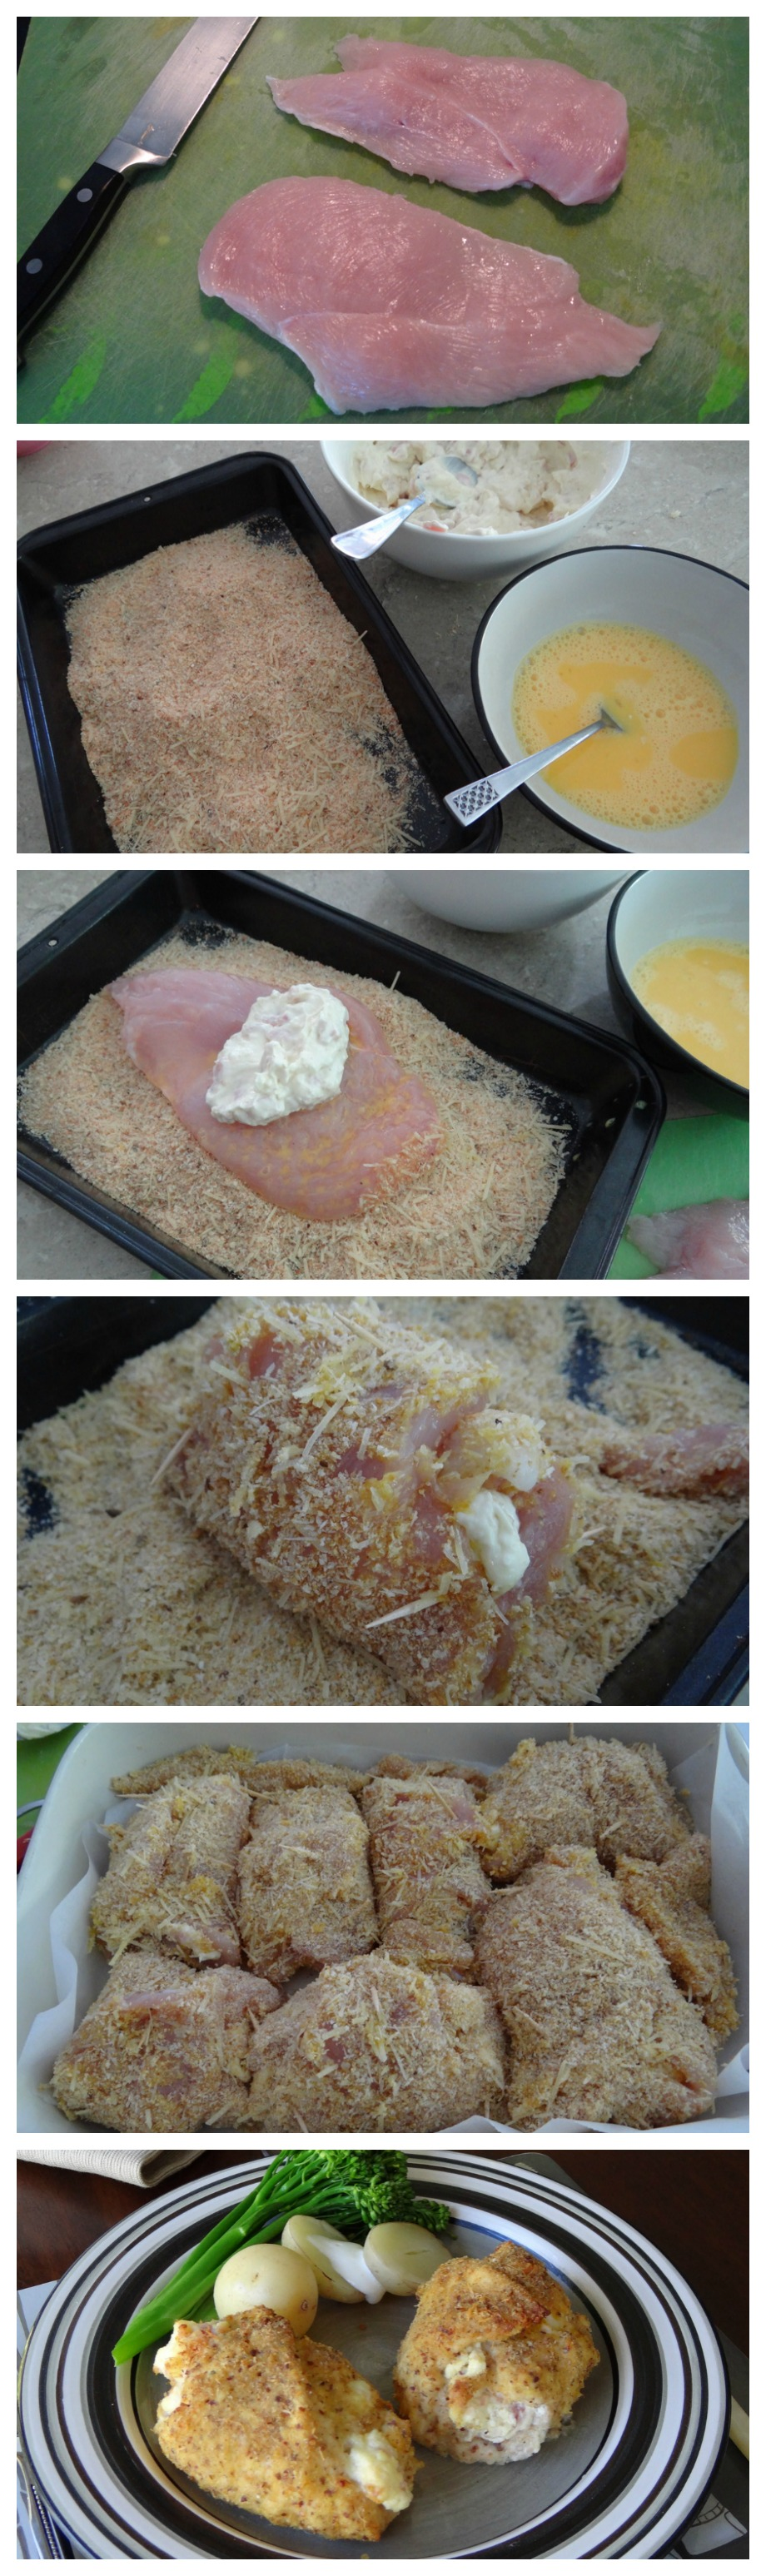 Stuffed Crumbed Chicken Recipe